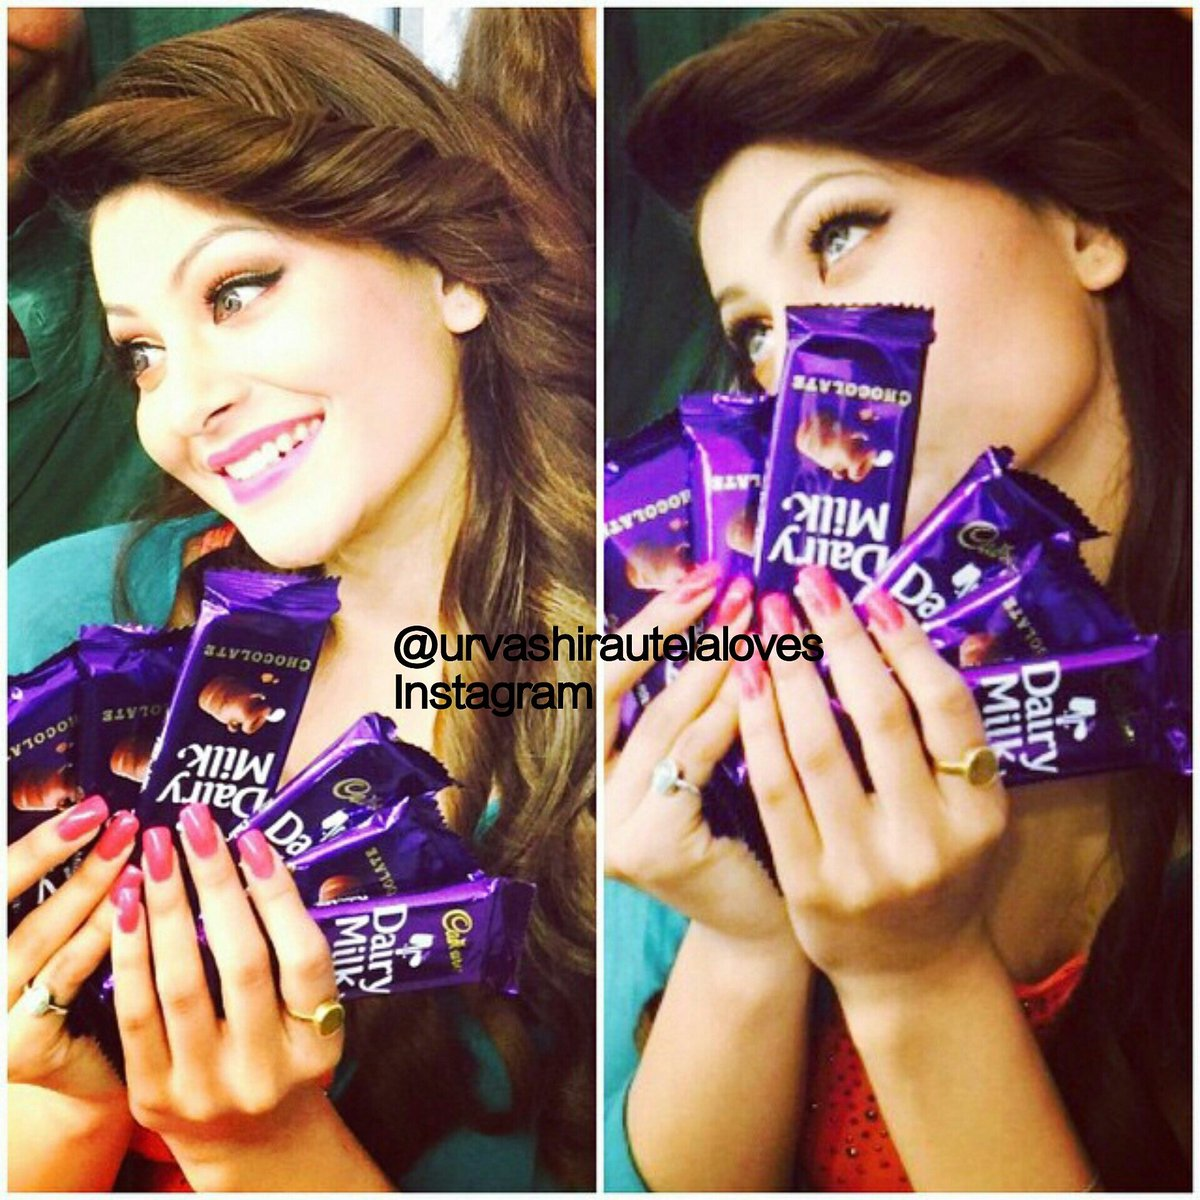 She loves chocolate  And we love her  Good night guys // #urvashirautela #gainfollowers #commentbellow :) \\ @URautelaForever<br>http://pic.twitter.com/U5m9WBQXEs